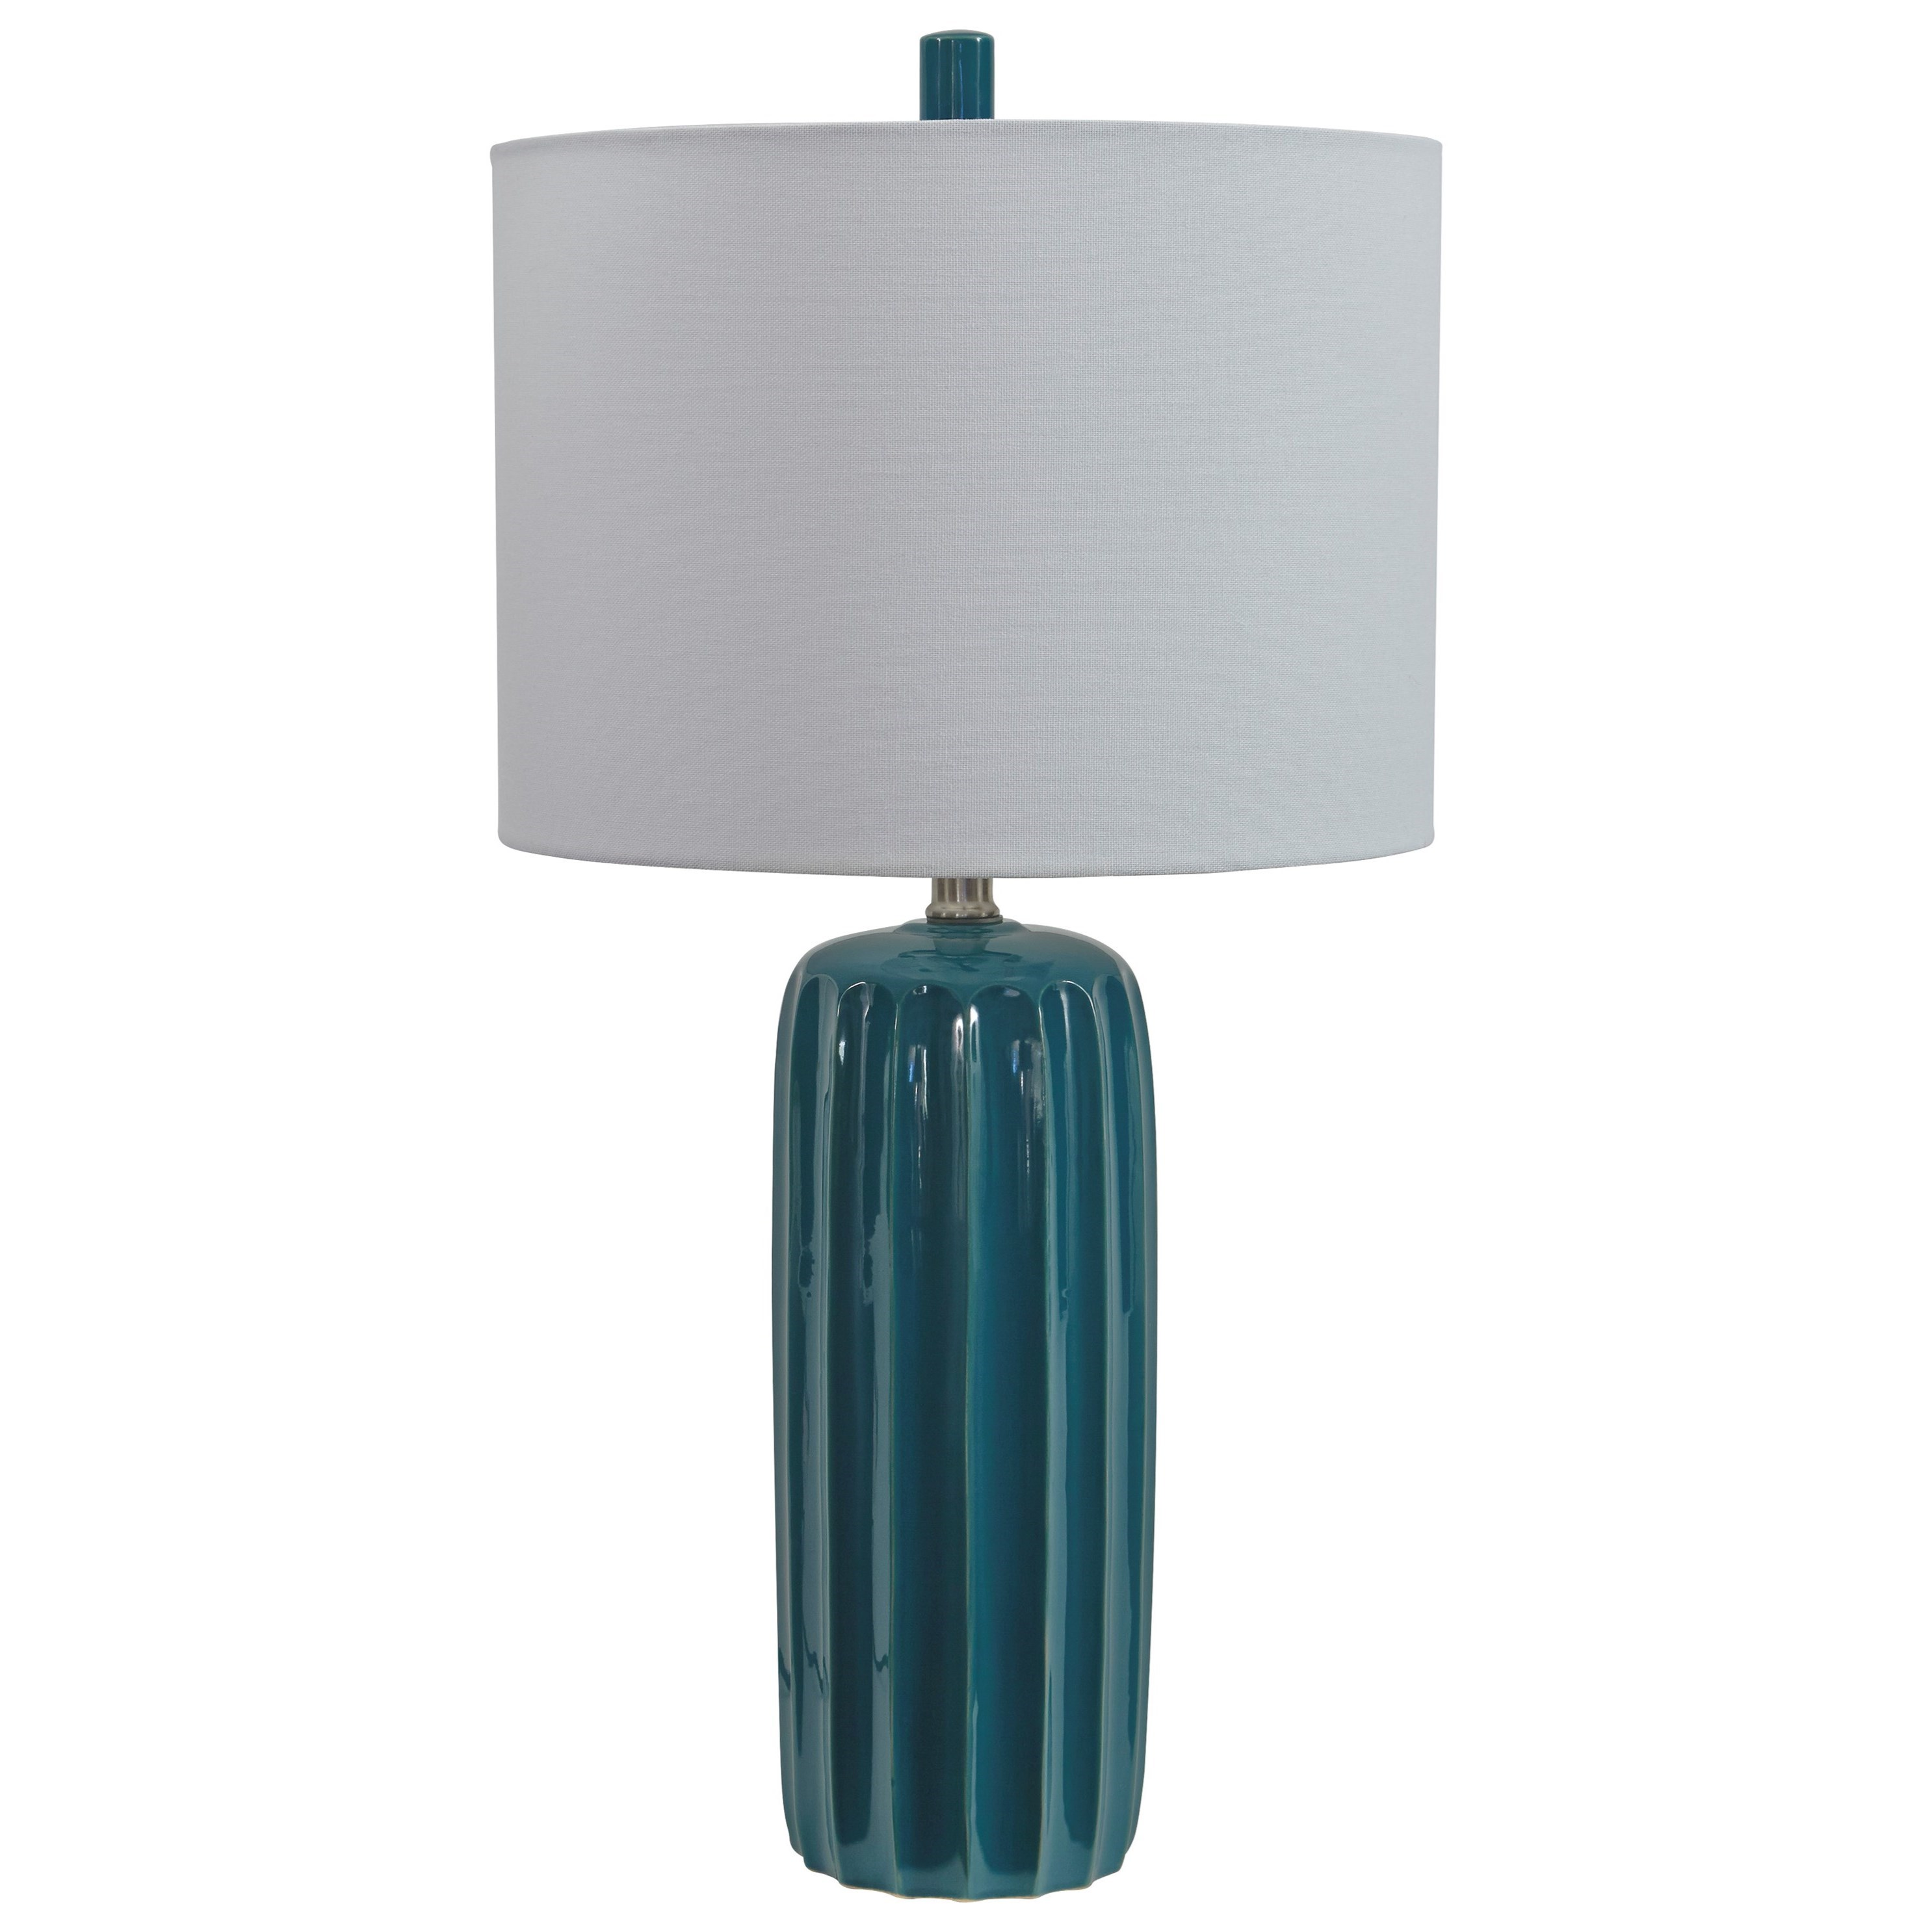 Signature Design by Ashley Lamps - Contemporary Set of 2 Adorlee Teal Ceramic Table Lamps ...